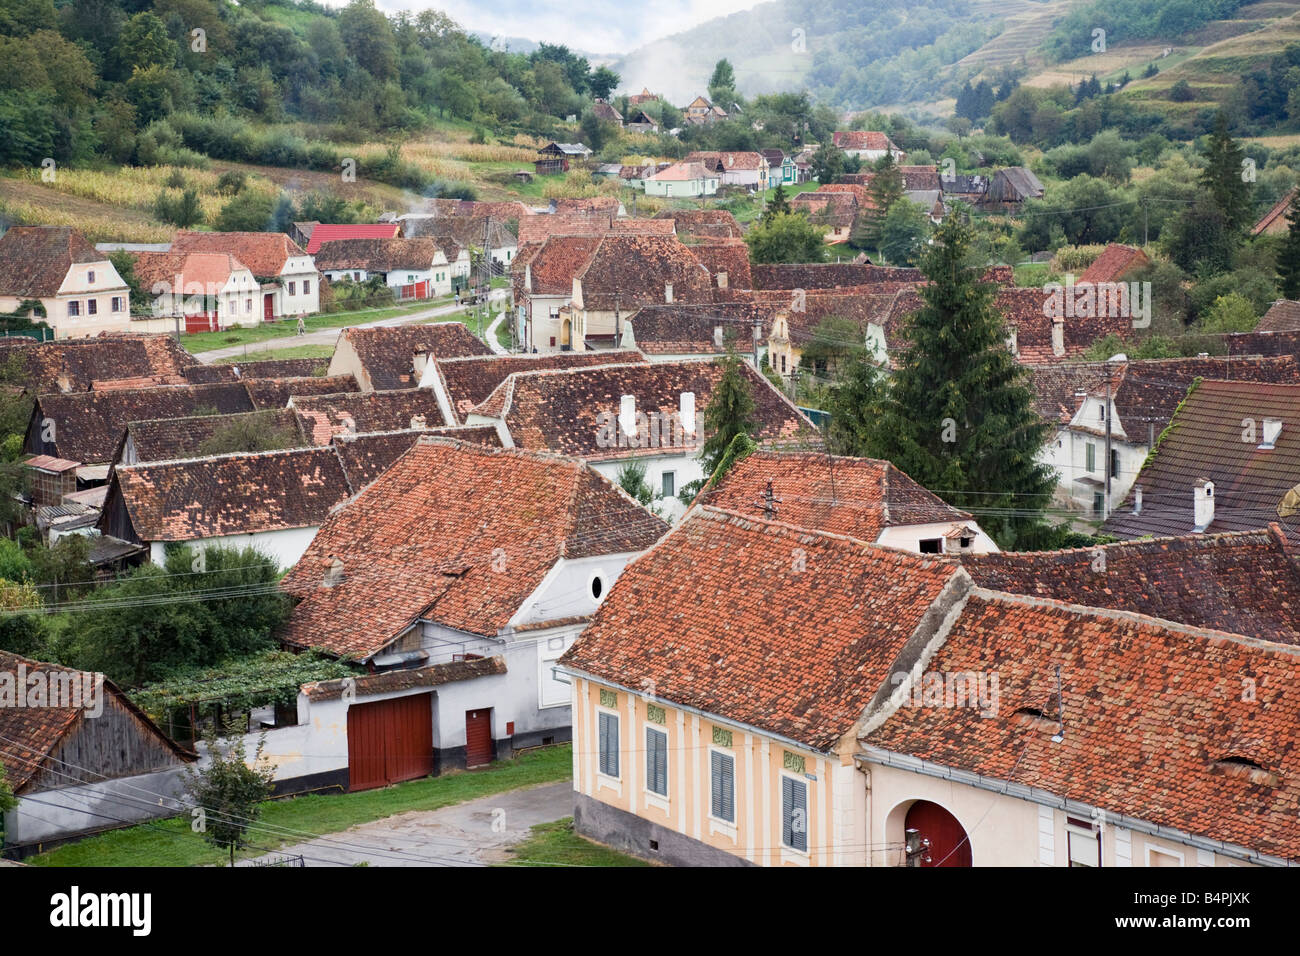 Biertan Transylvania Romania Europe Aerial view of village red tiled rooftops - Stock Image